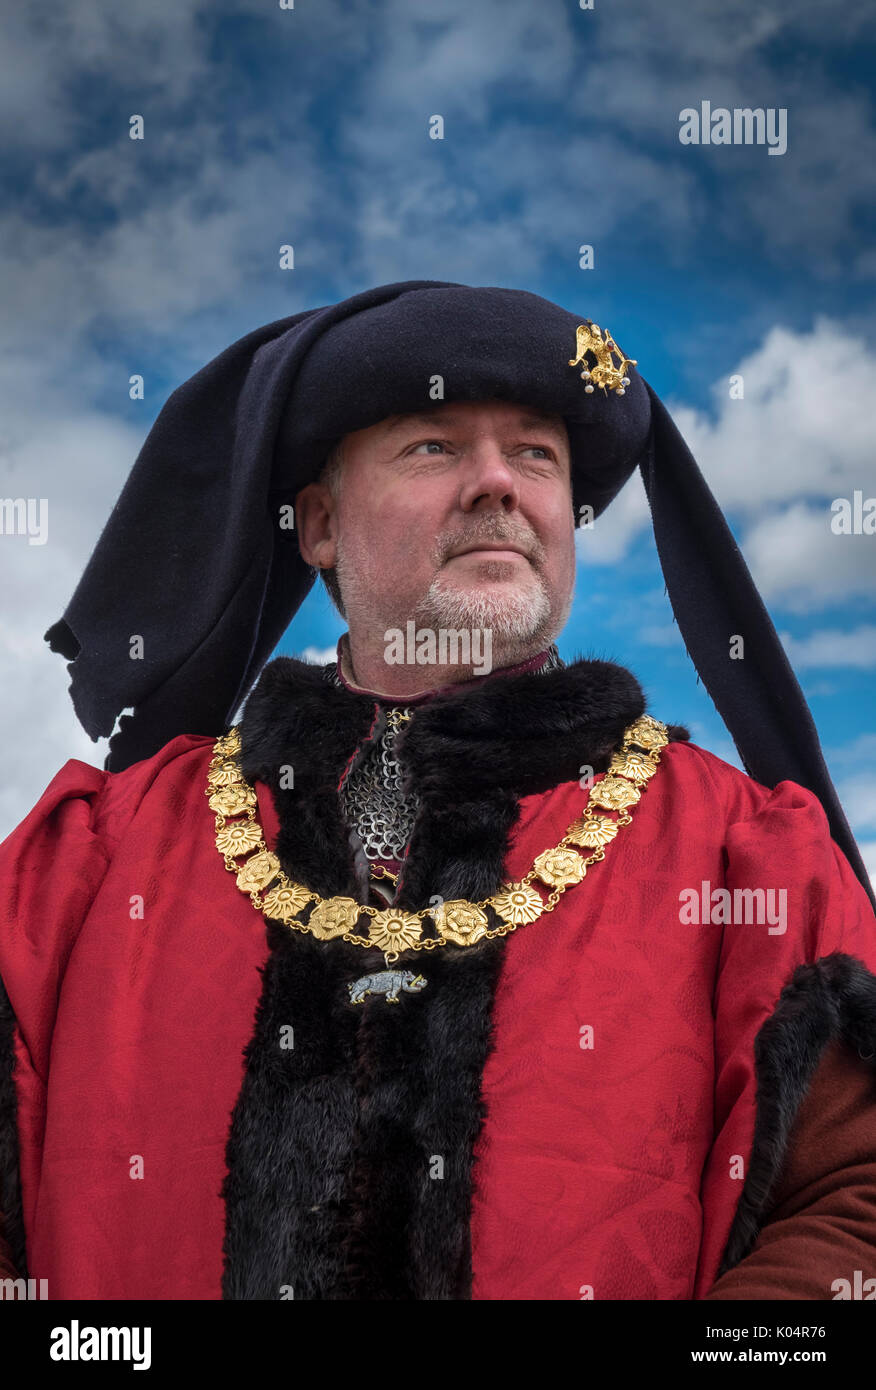 Man dressed in 15th century period costume and regalia at Bosworth Battle re-enactment event, Leicestershire, England UK - Stock Image